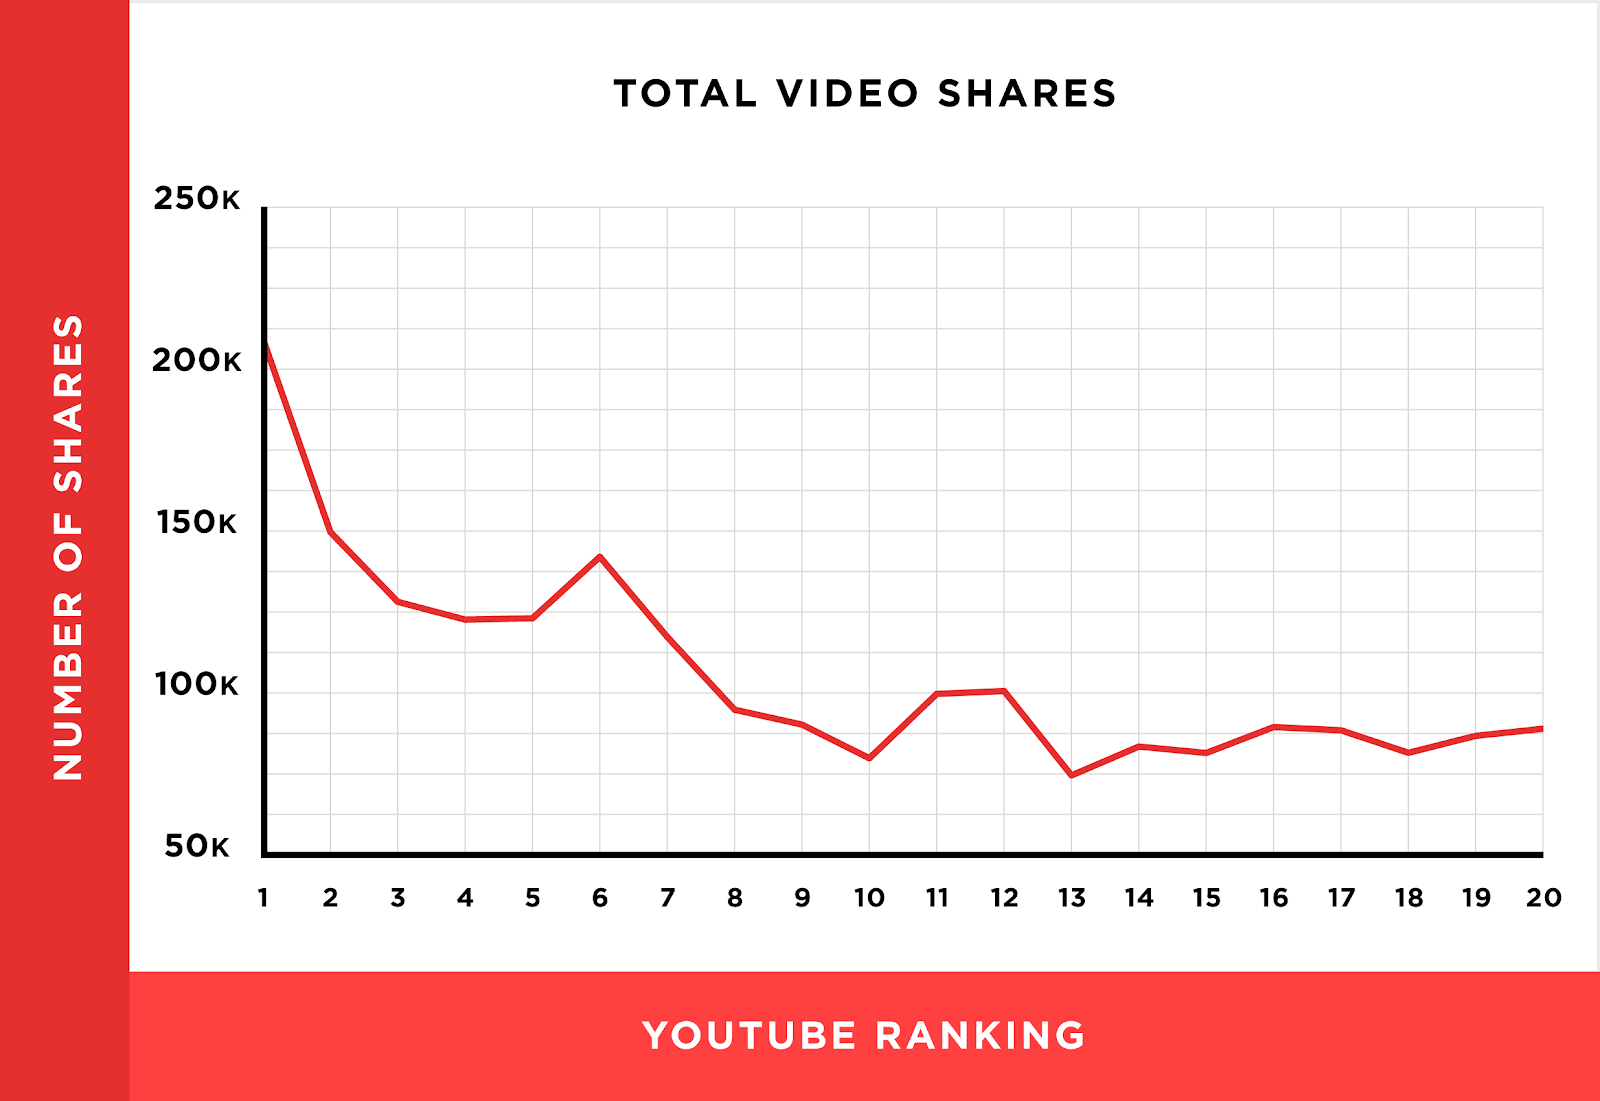 Backlinko's chart showing a link between social shares and YouTube SEO